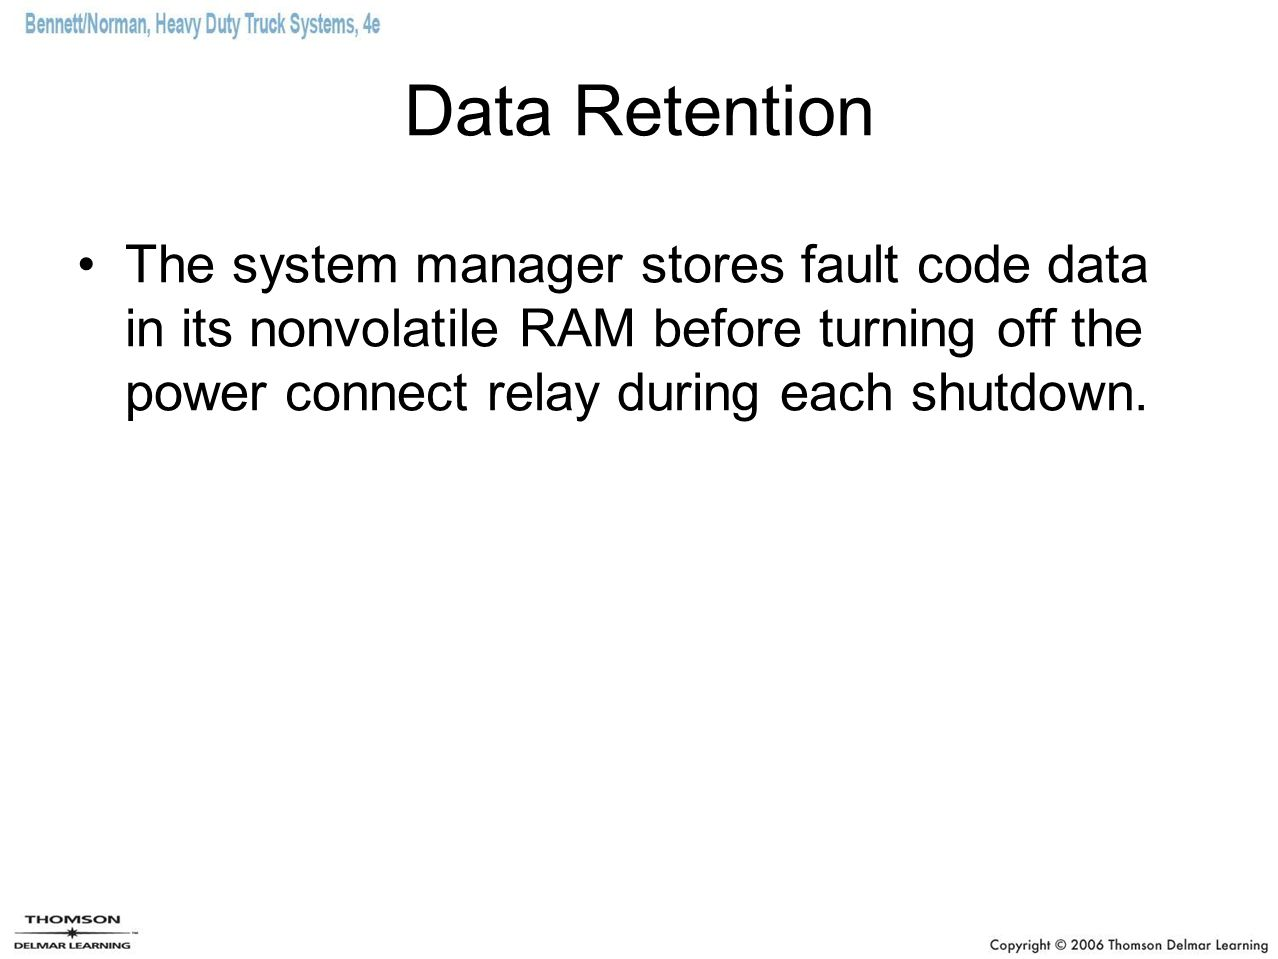 Data Retention The system manager stores fault code data in its nonvolatile RAM before turning off the power connect relay during each shutdown.